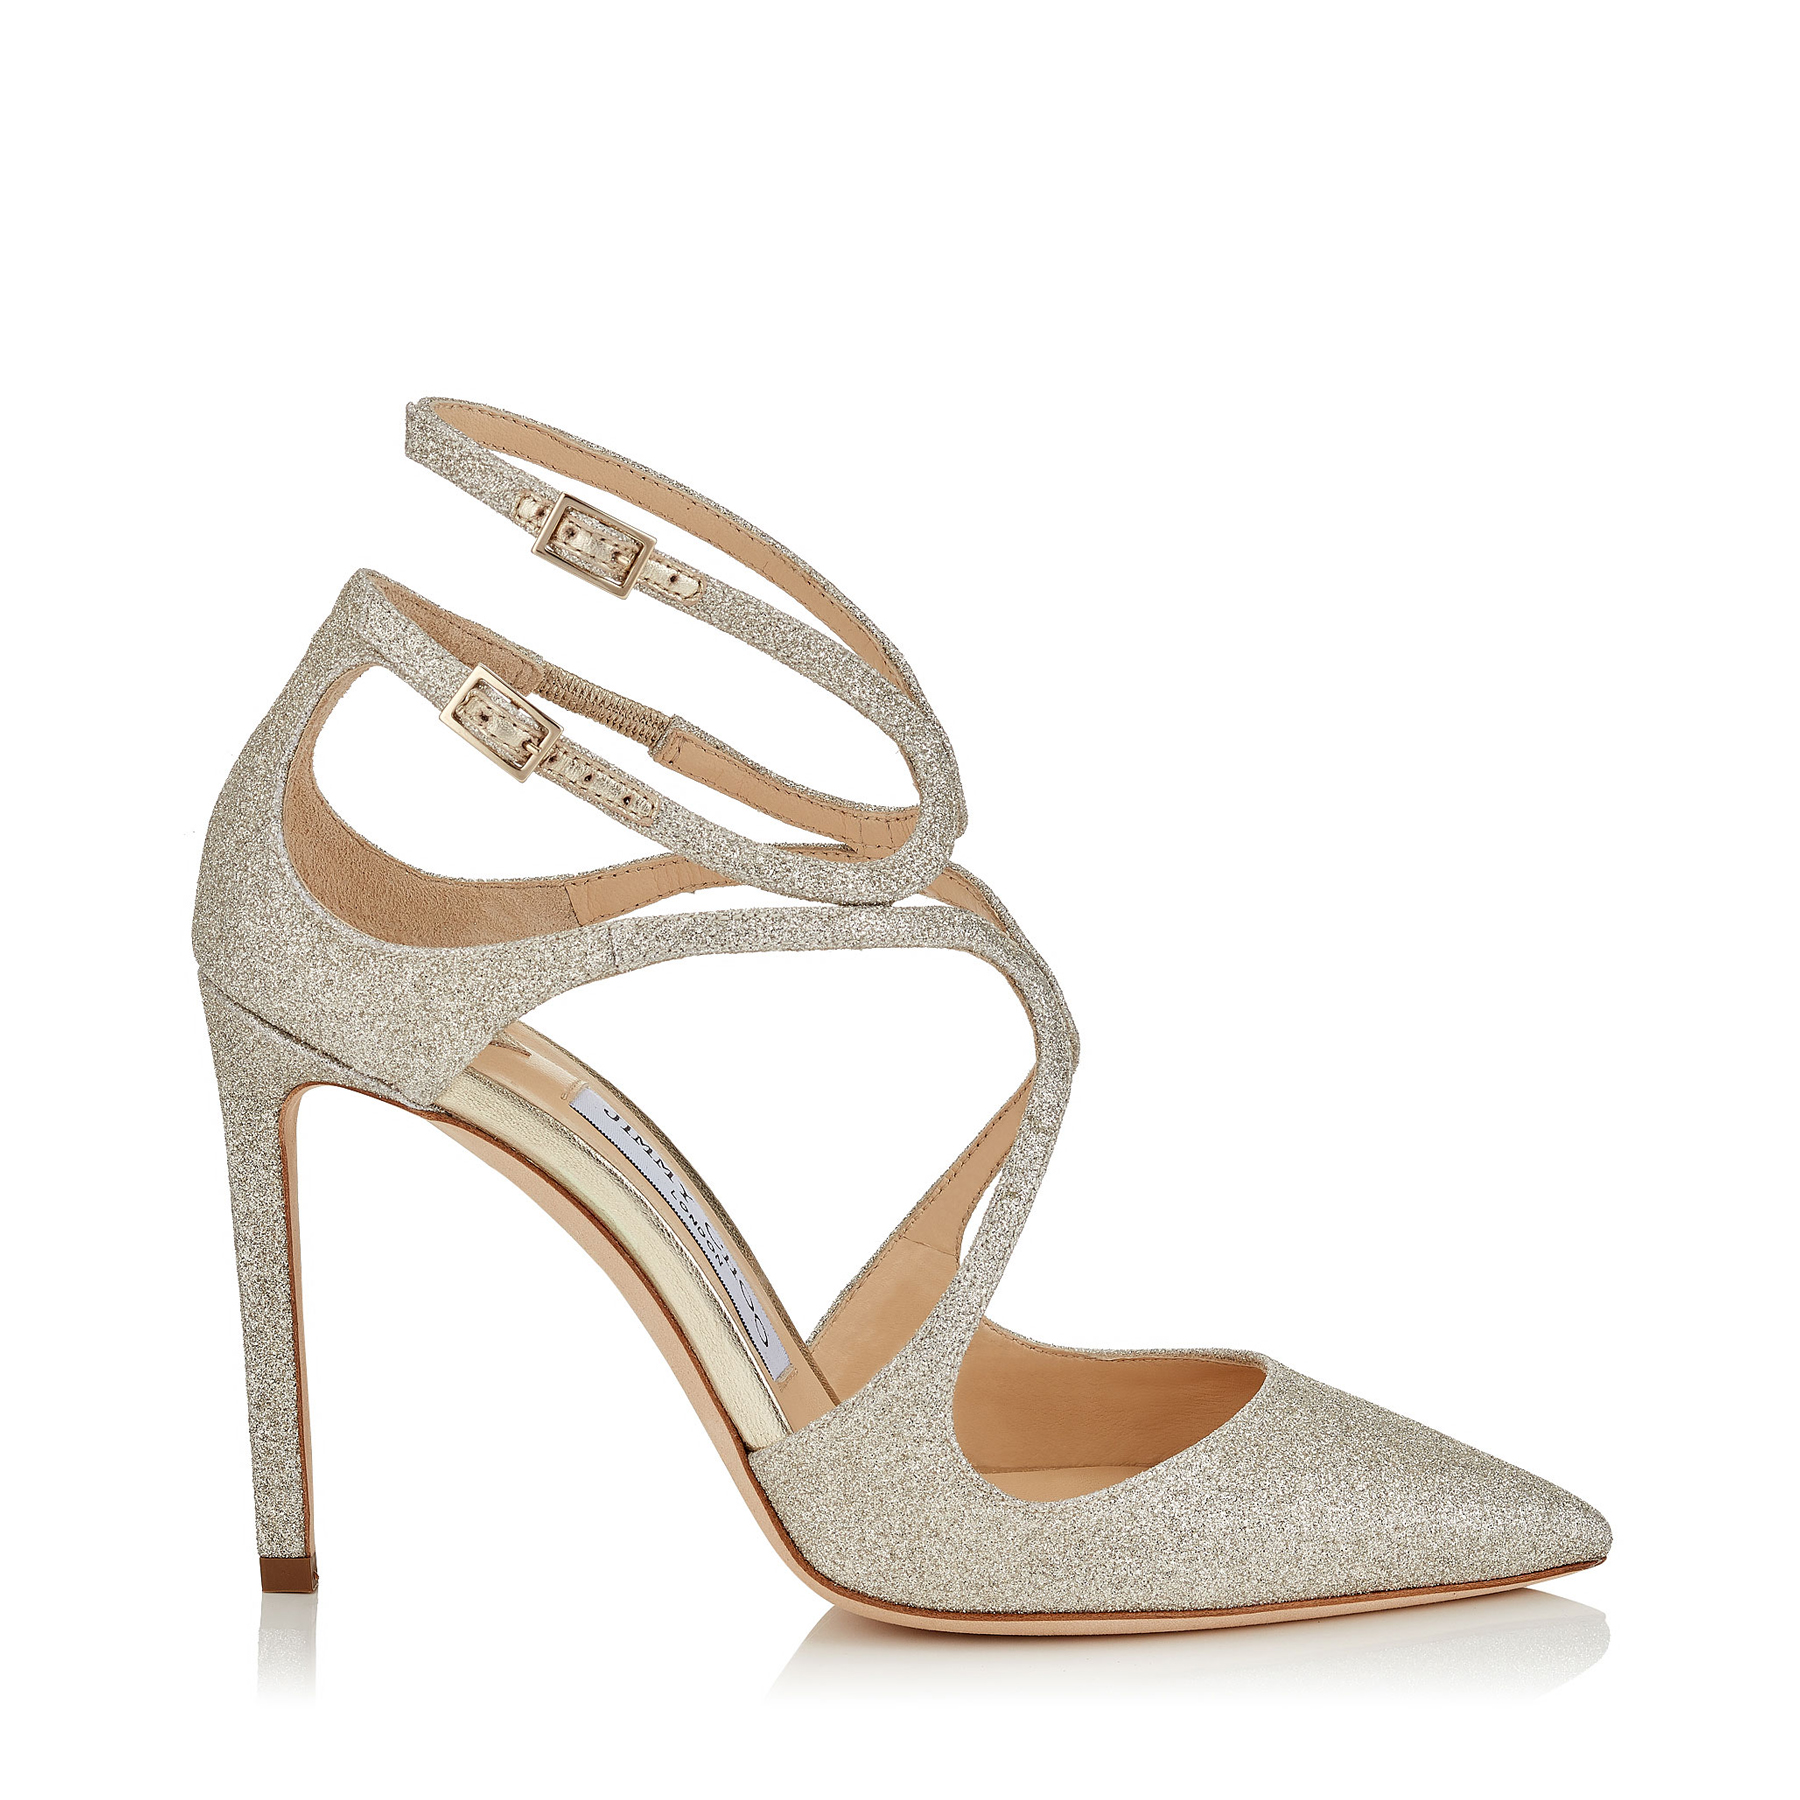 LANCER 100 Platinum Ice Dusty Glitter Pointy Toe Pumps by Jimmy Choo